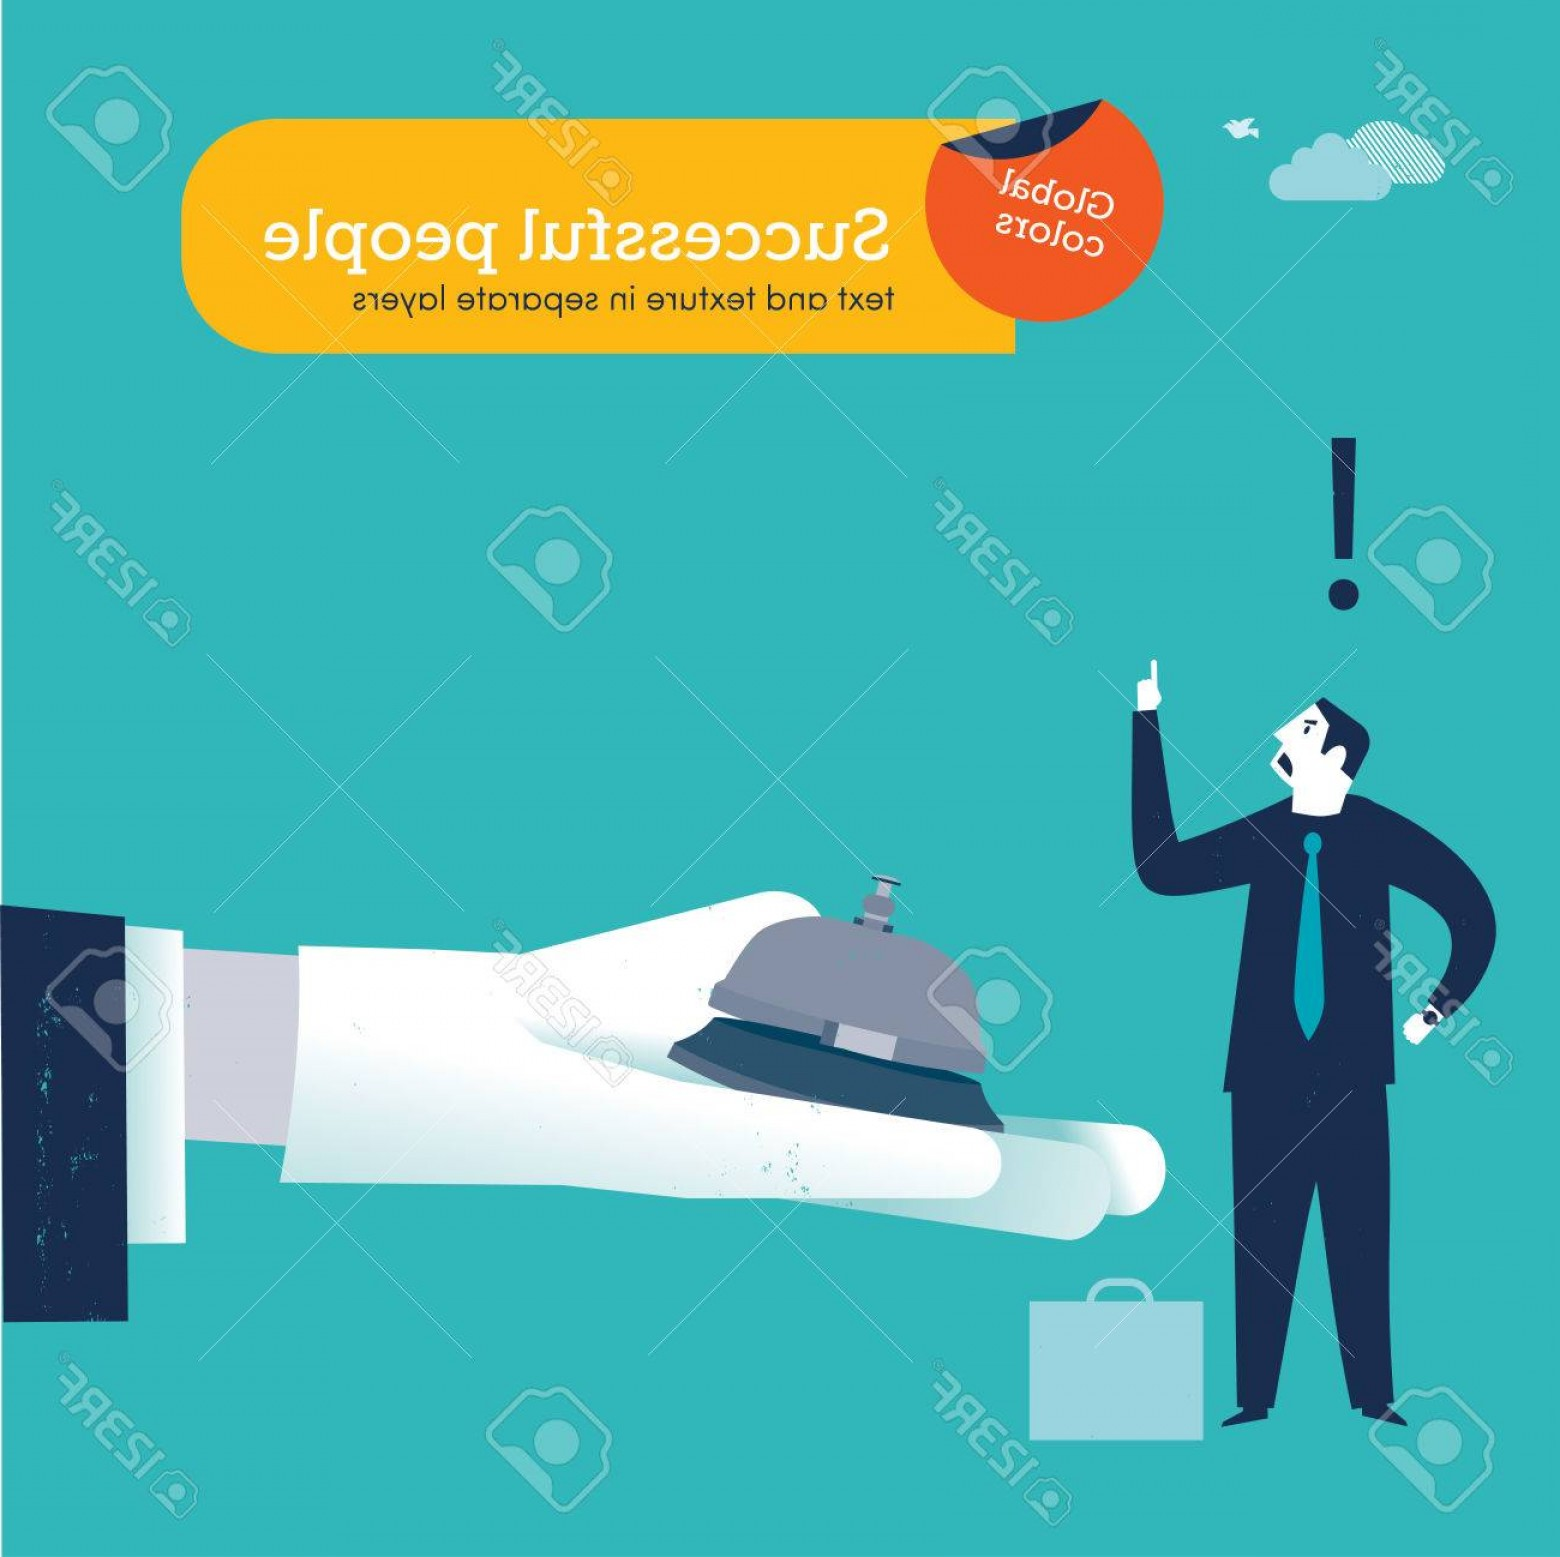 White Glove Service Vector: Photostock Vector Businessmen Ringing A Service Bell On Hand With White Glove Vector Illustration Eps File Global Co